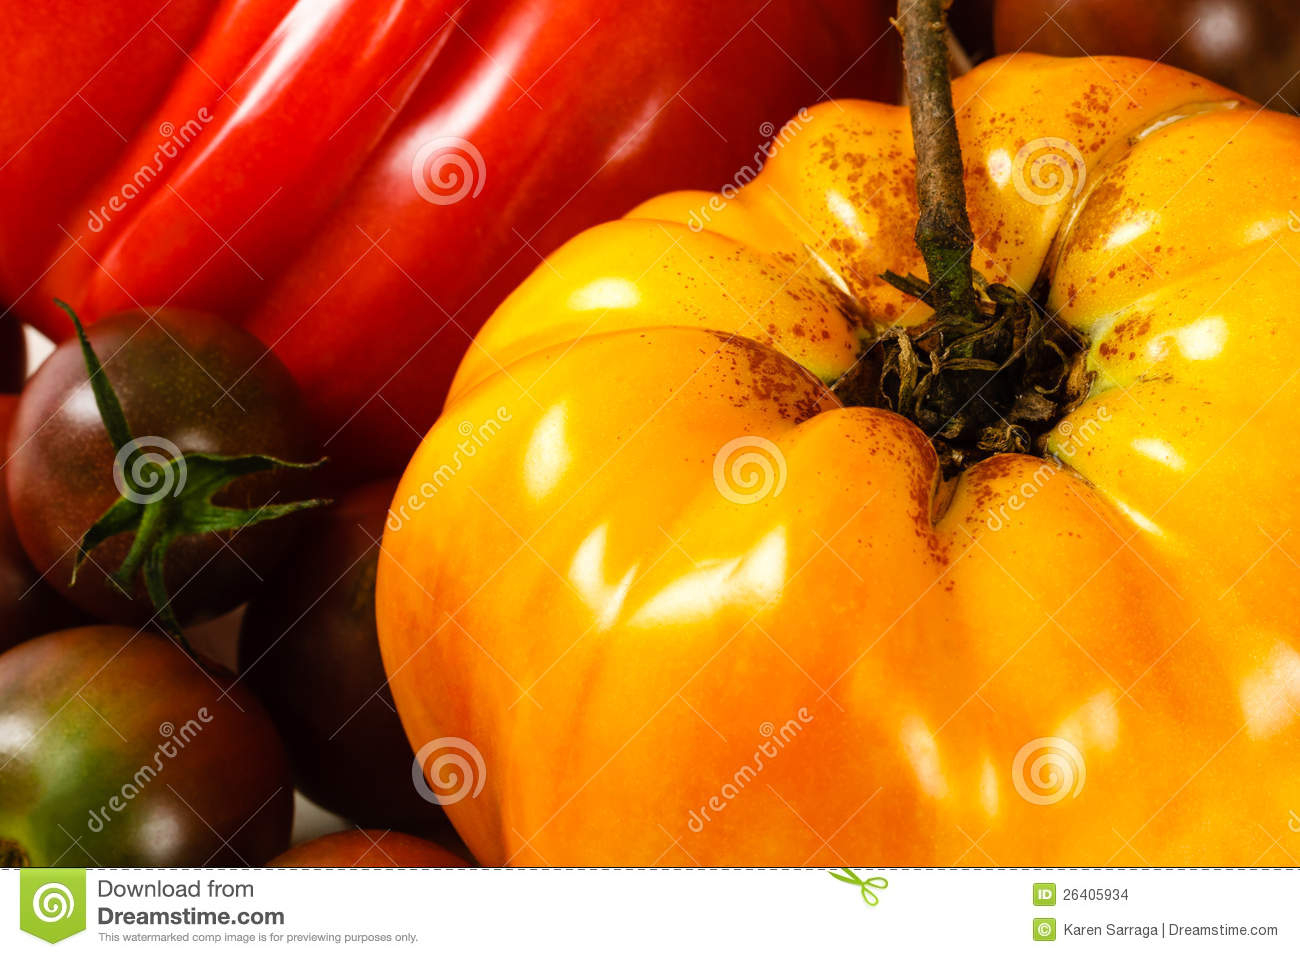 Yellow Heirloom Tomato Stock Images - Image: 26405934